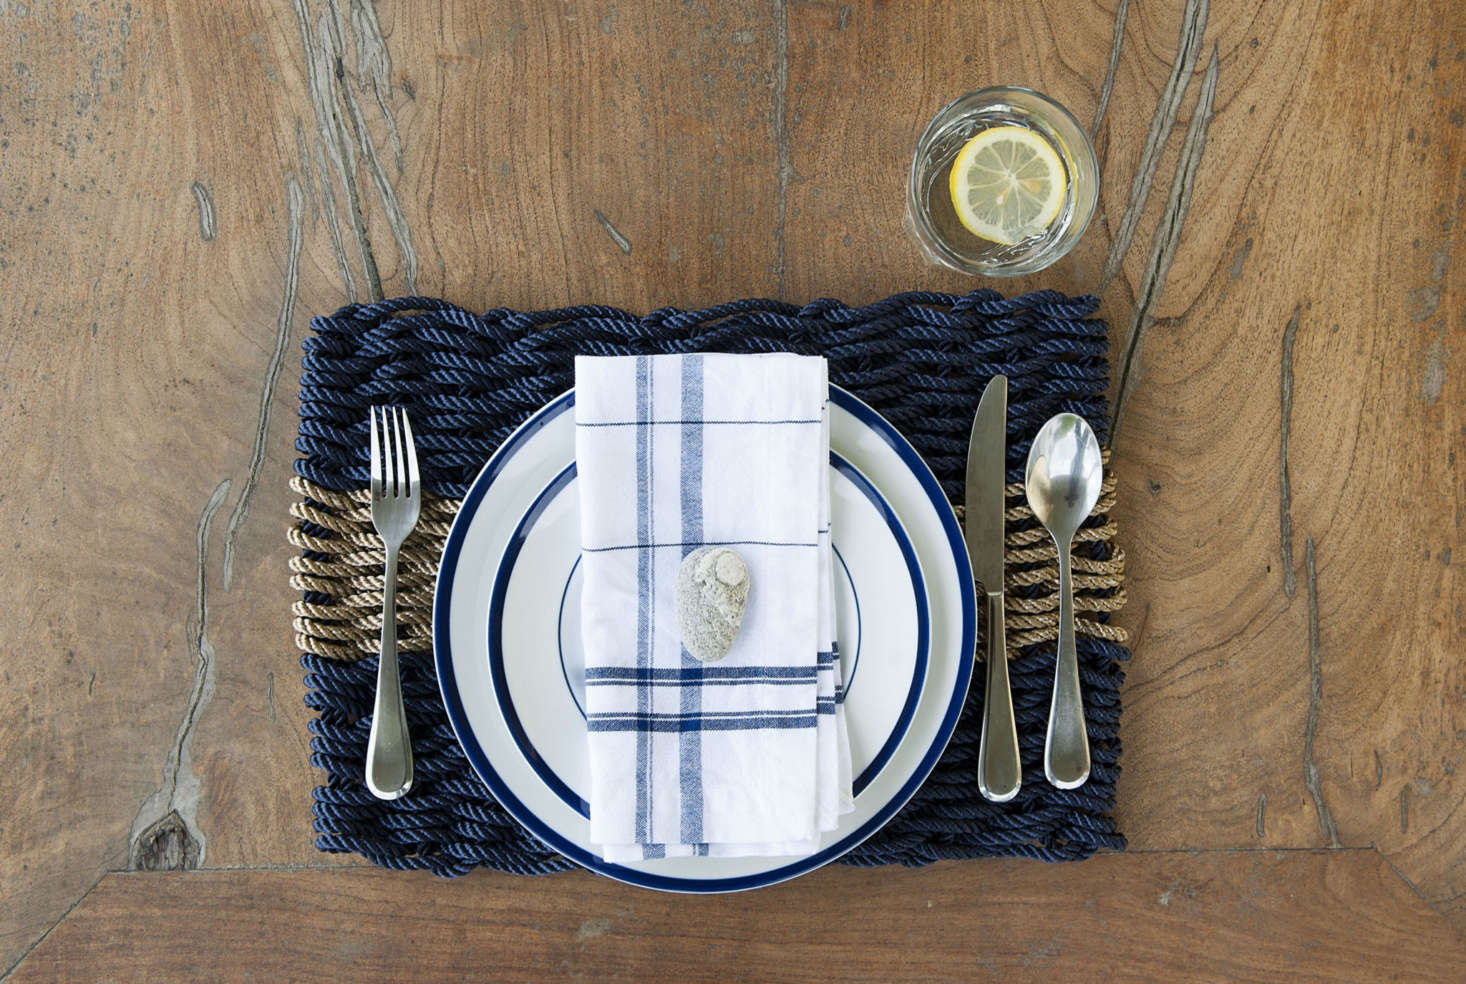 The site also sells good-looking key chains and placemats—all made from the same rope that lobstermen use. A set of 4 Navy with Oak Stripe Placemats is $120 at The Rope Co.